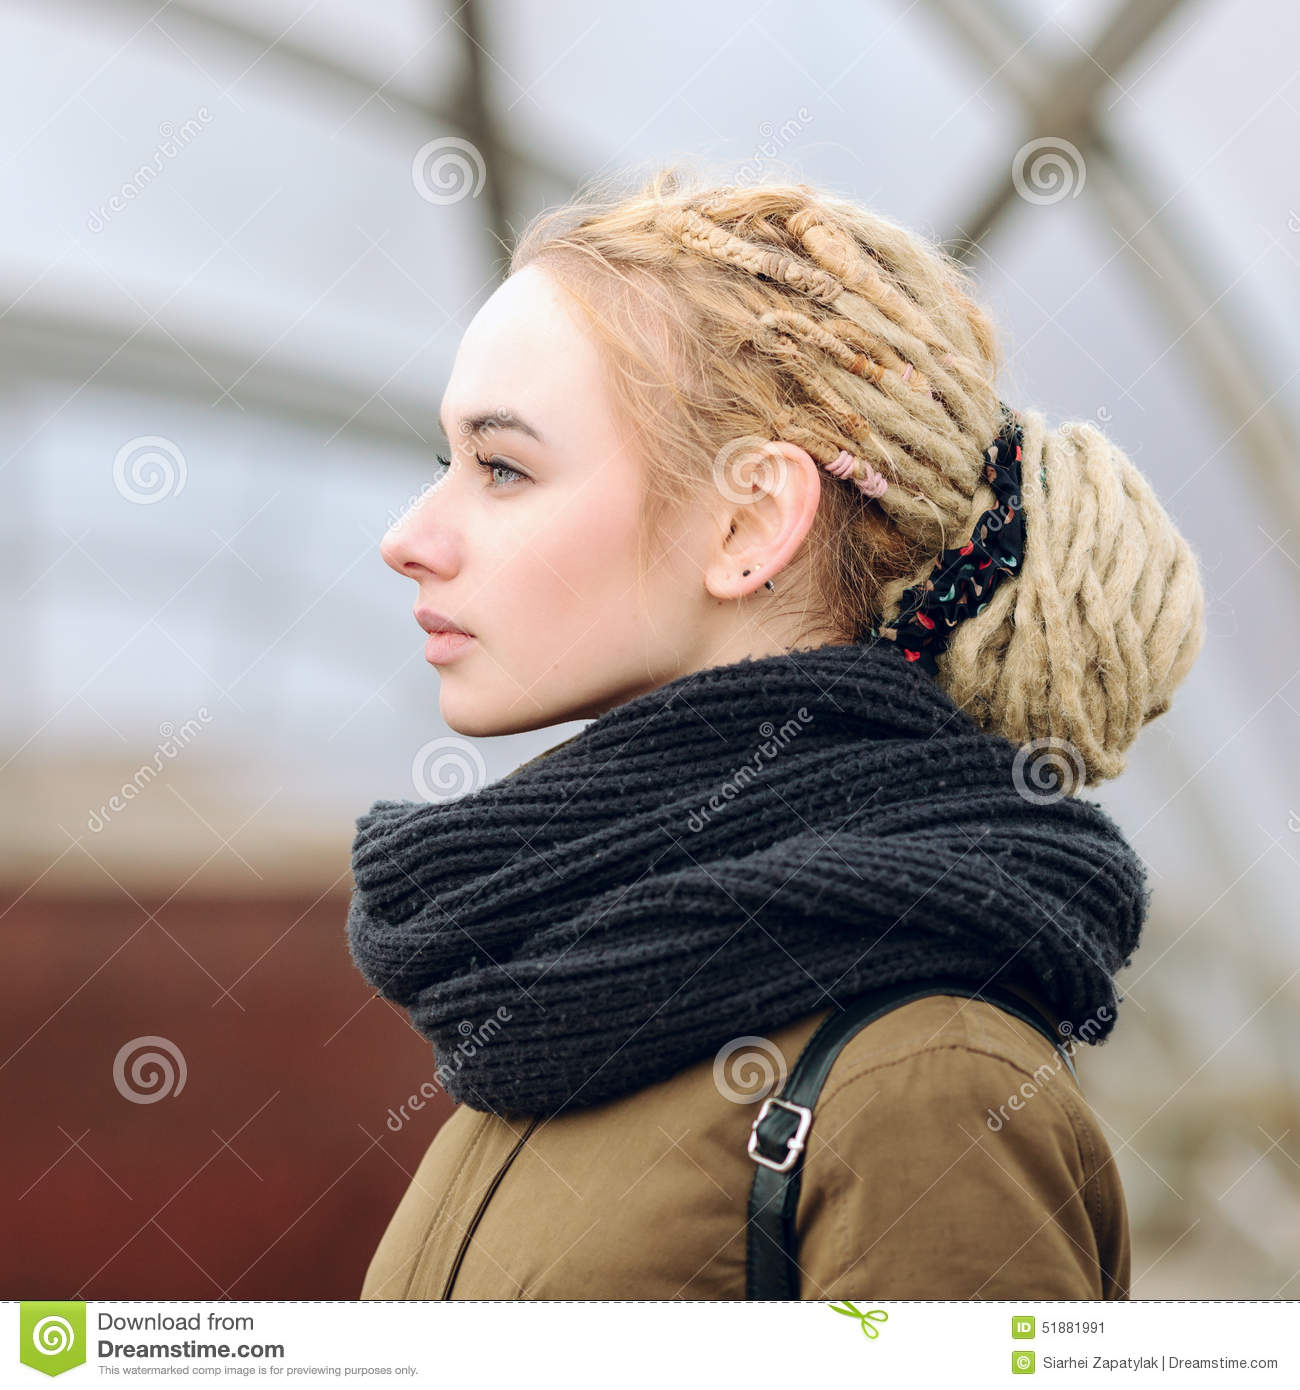 Closeup Portrait Of Young Beautiful Blonde Woman With A Dreadlocks